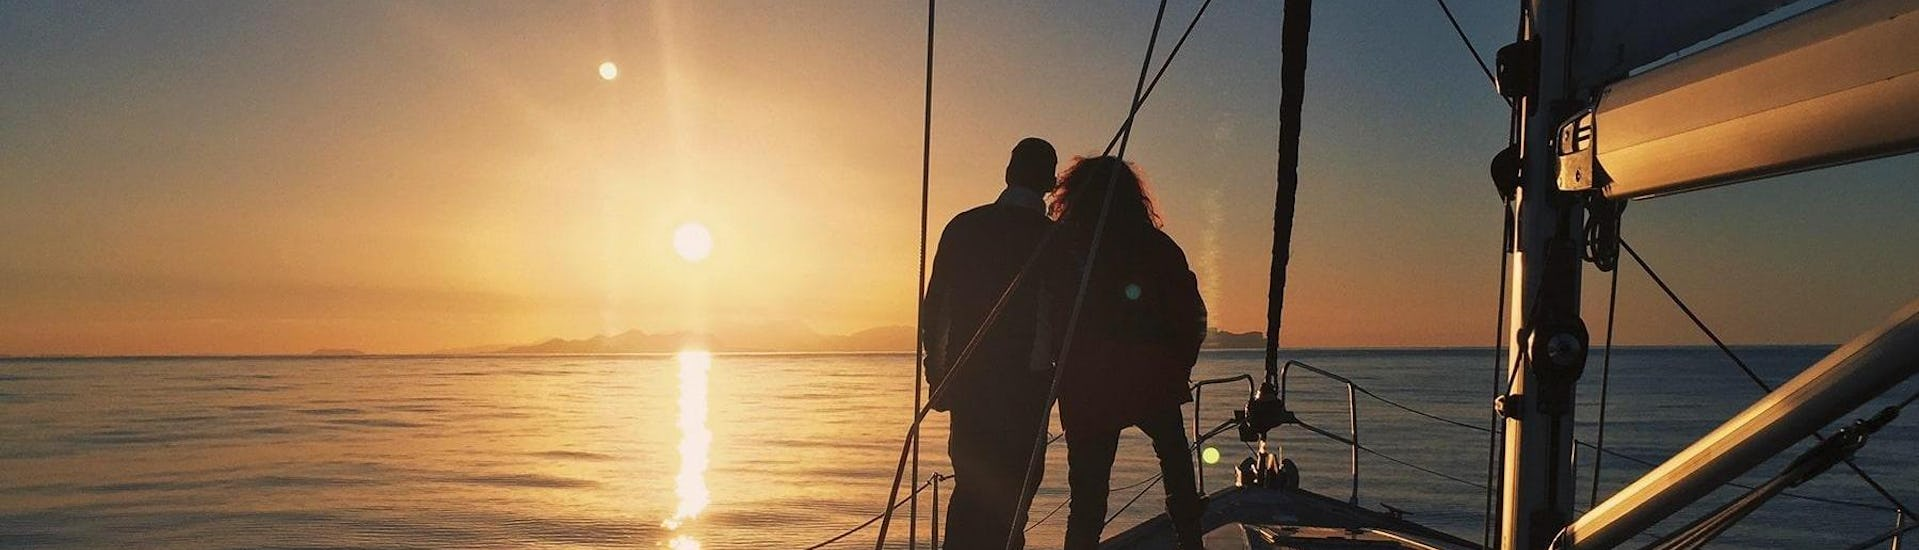 During the Private Sunset Sailing Tour with Romantic Dinner - Barcelona which is organised by Five Star Barcelona, a couple is enjoying the unique moments in the open sea when the sun disappears behind the horizon.